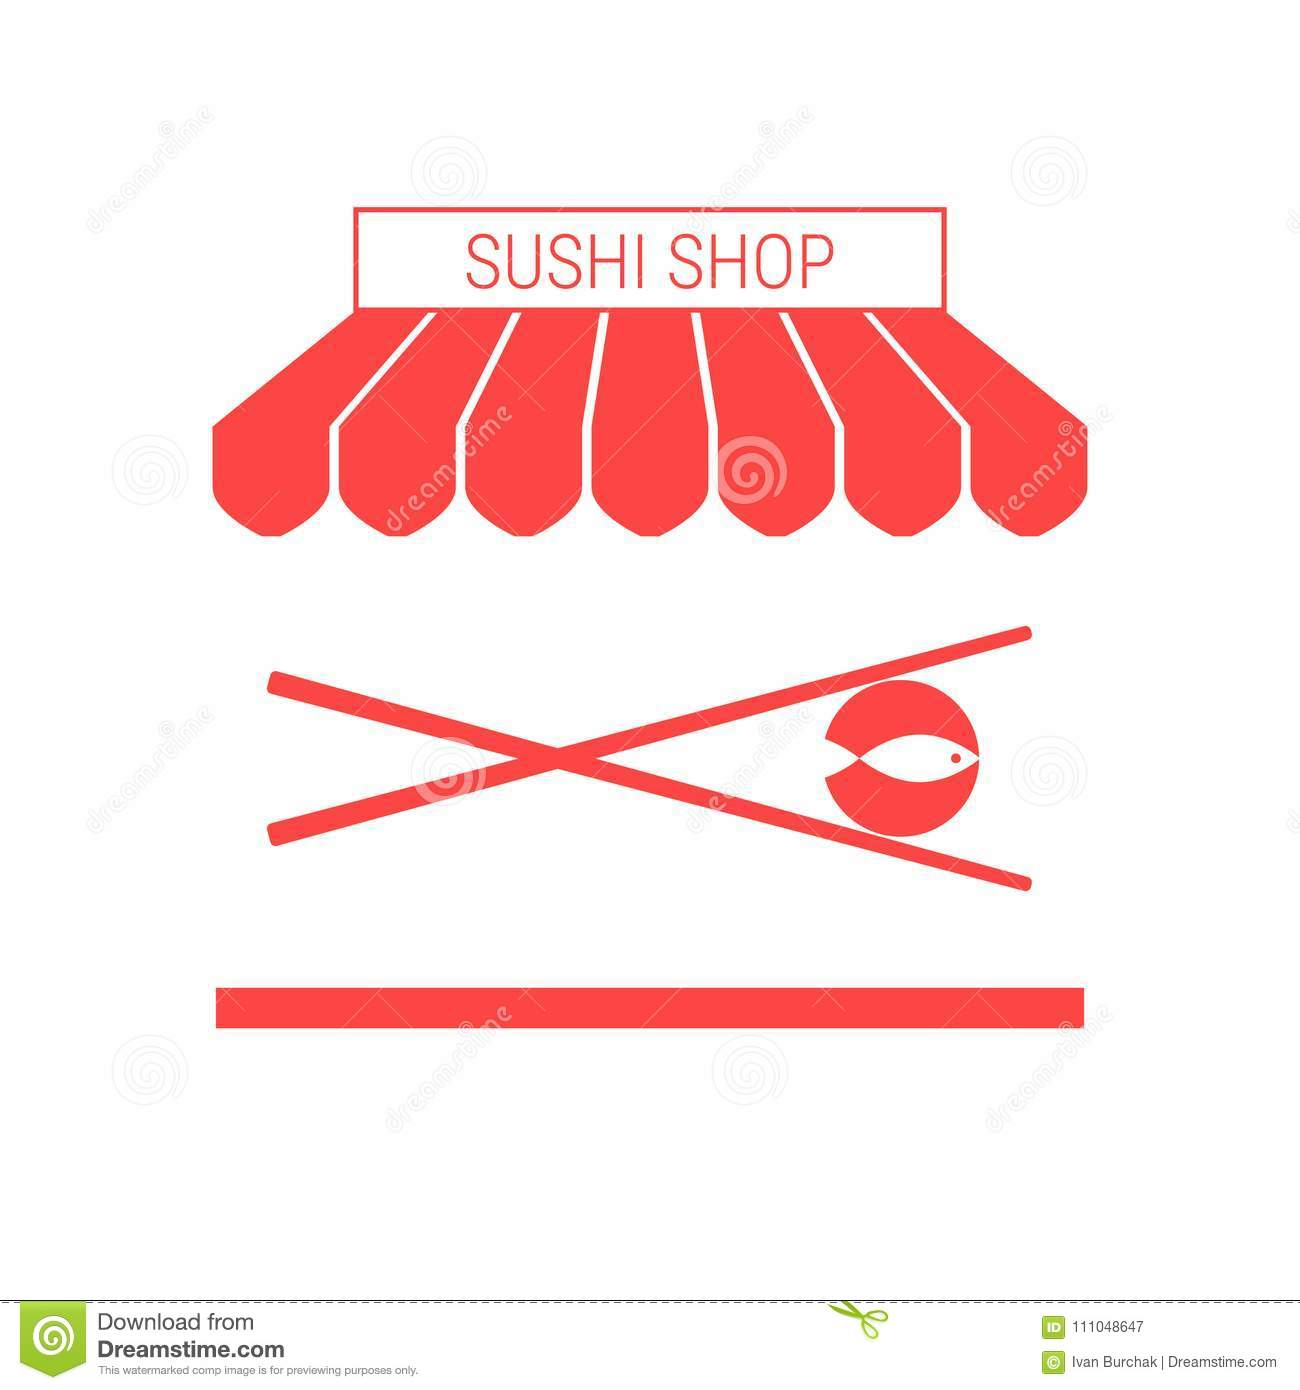 Sushi Shop, Japanese Restaurant Single Flat Vector Icon. Striped Awning and Signboard